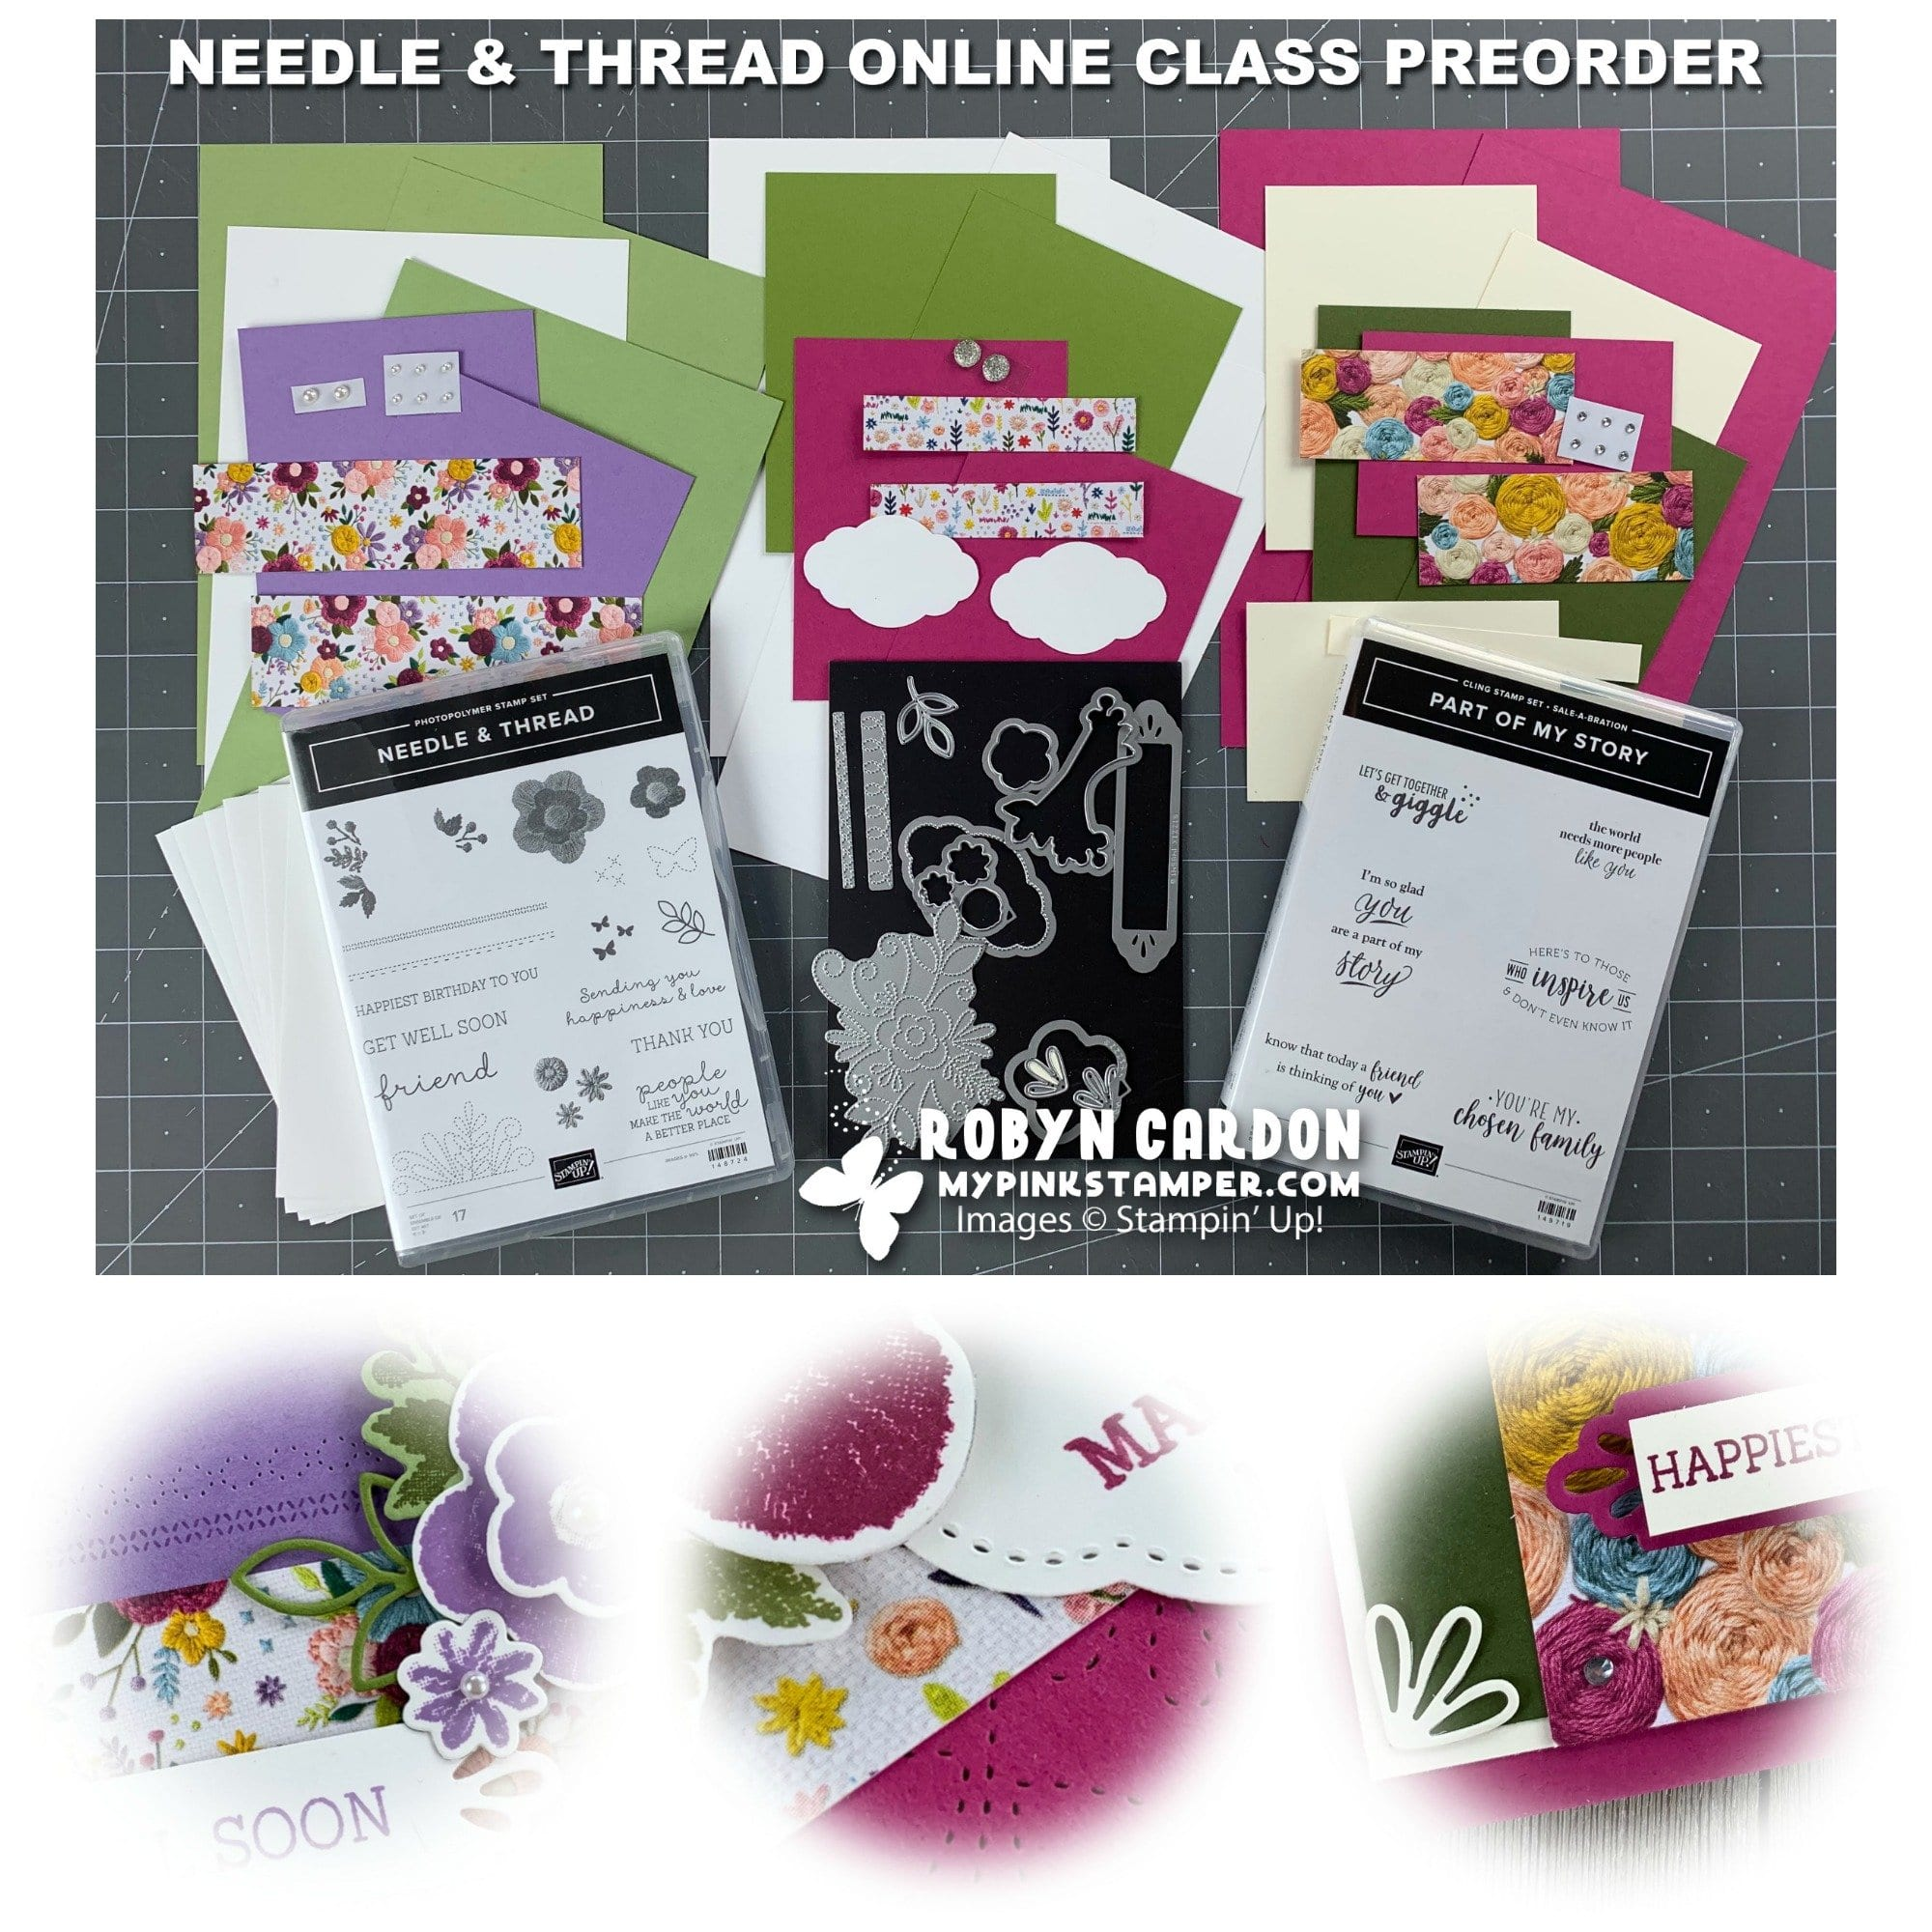 Needle & Thread Online Class Preorder & My Pink Candy Giveaway w/ Winner